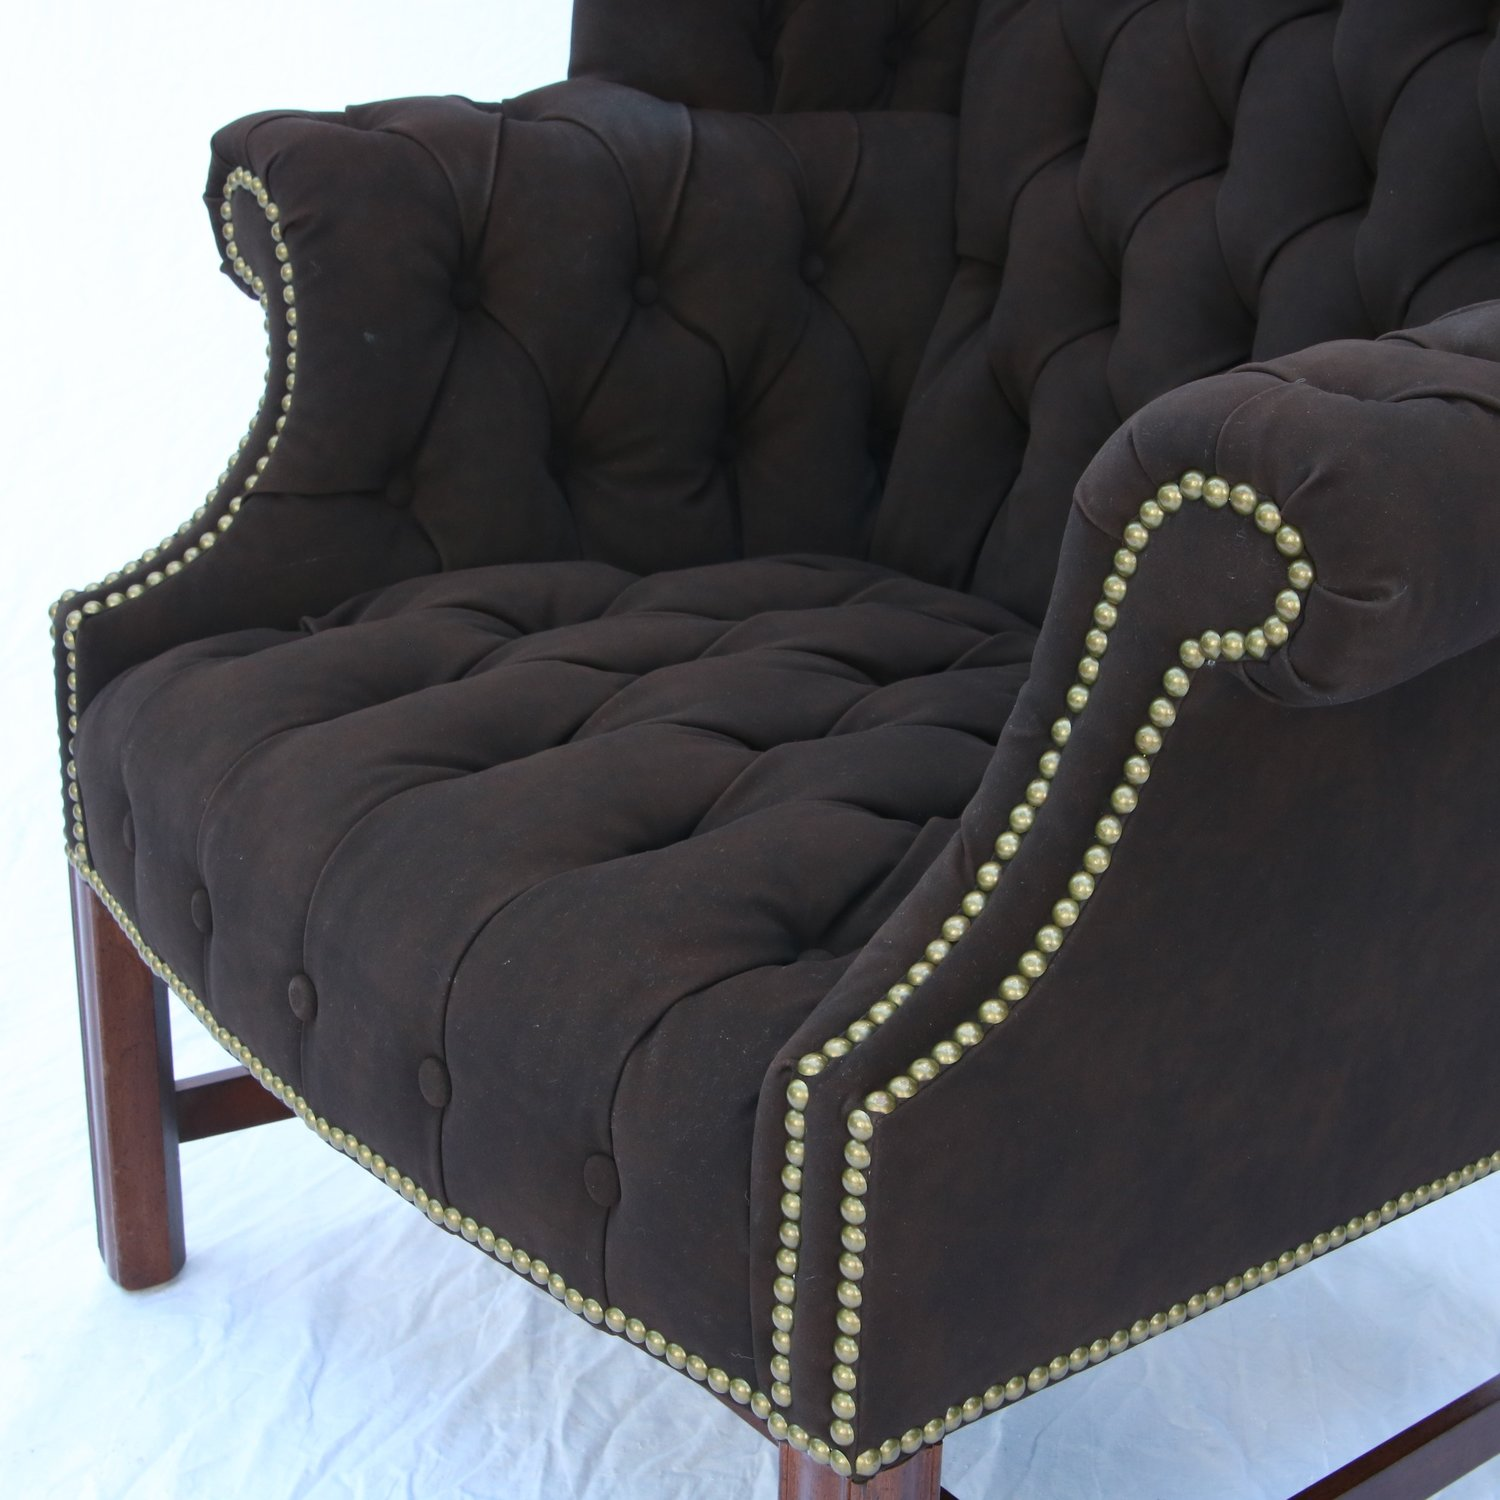 A Vintage Leather Tufted Wingback Chair by Drexel Black Suede